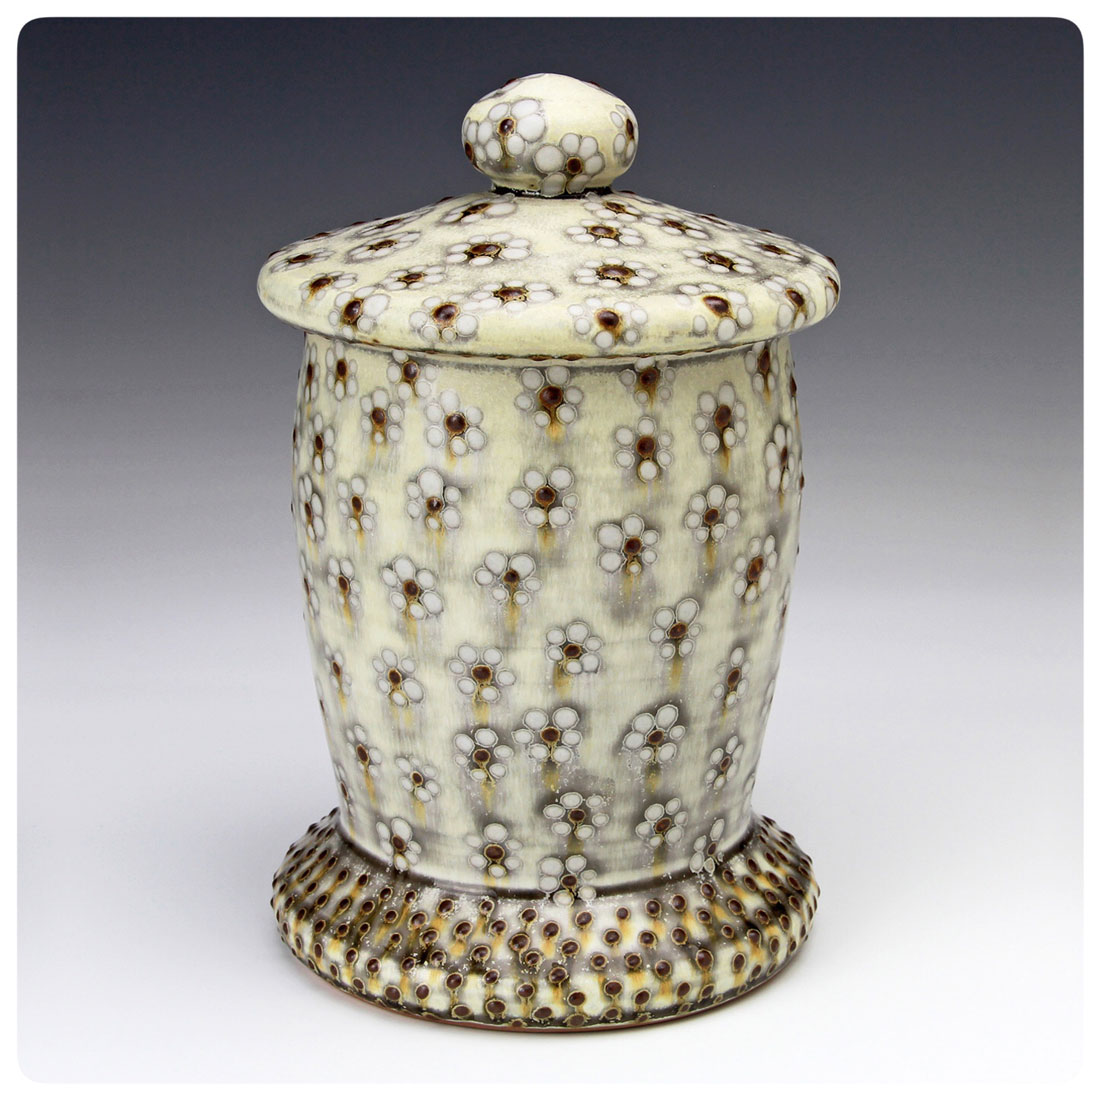 Covered Jar with white flower dot pattern made by Samantha Henneke | Bulldog Pottery | Seagrove | North Carolina